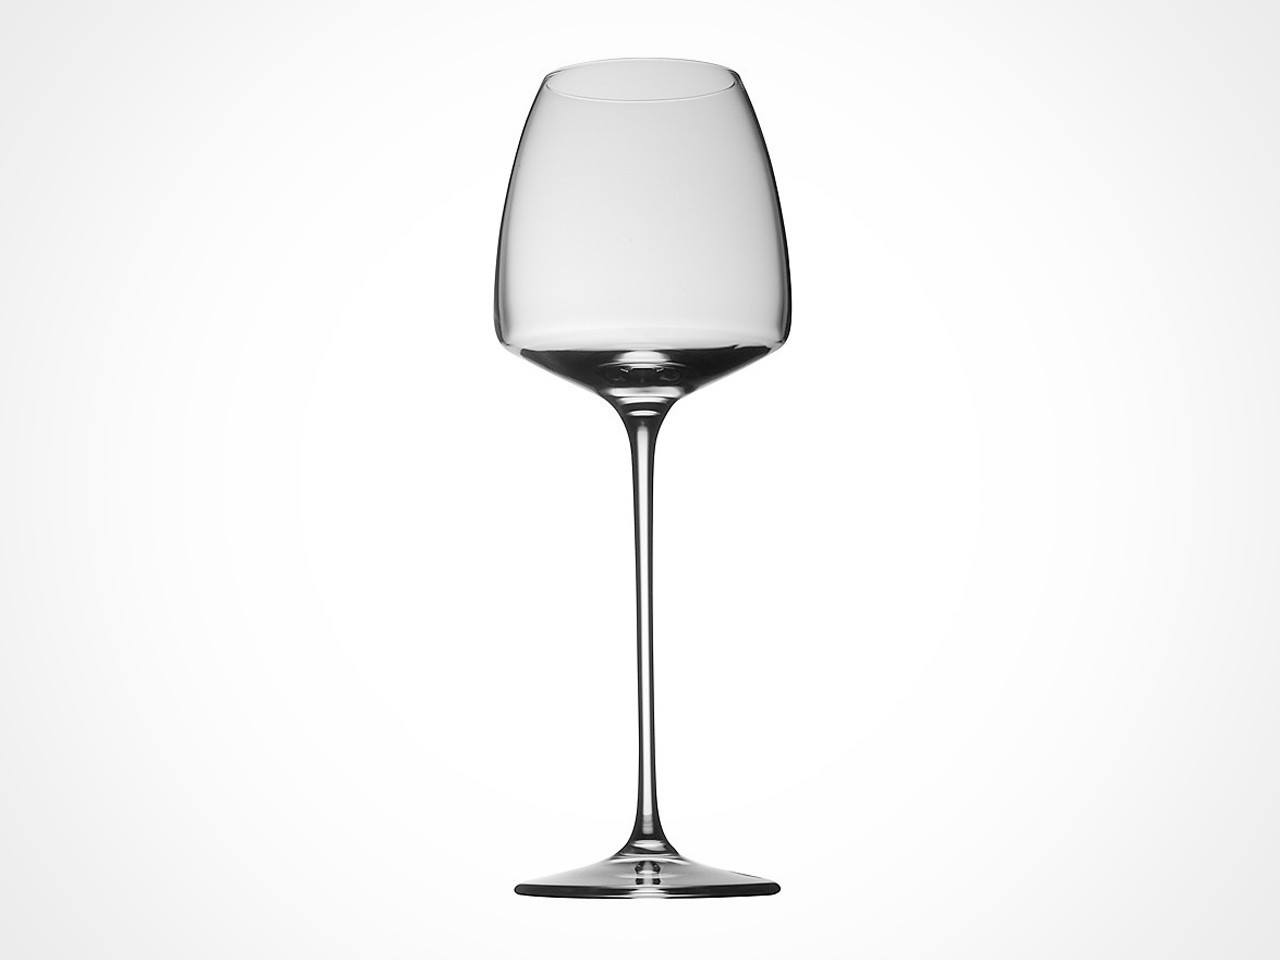 Rosenthal TAC 02 wine glasses before gray backdrop